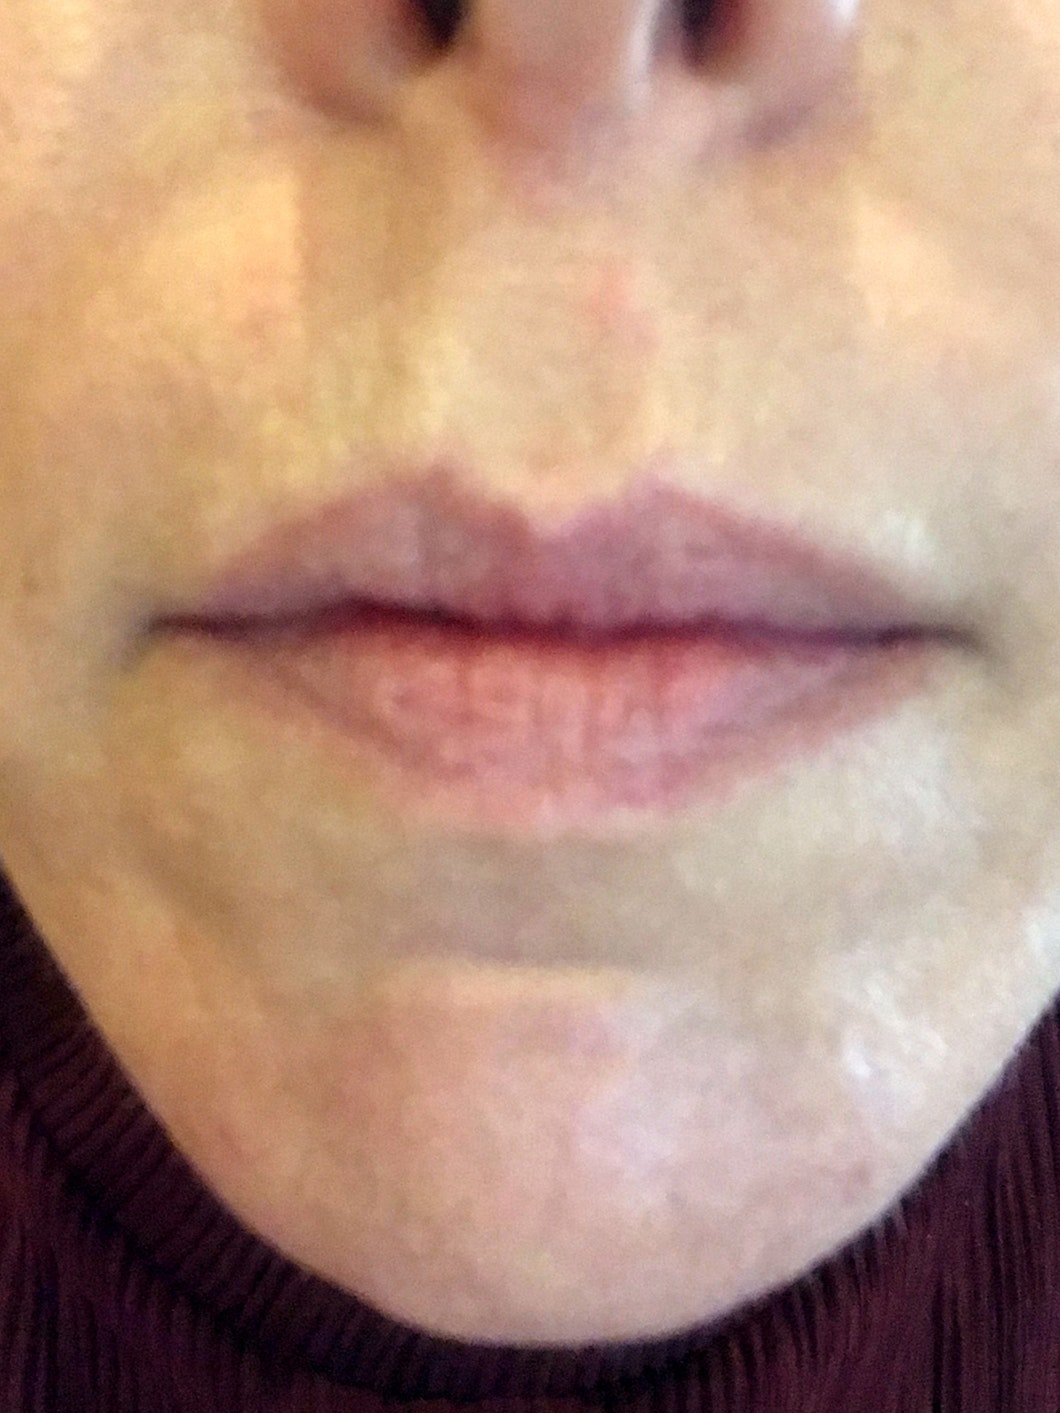 Woman's mouth before lip filler